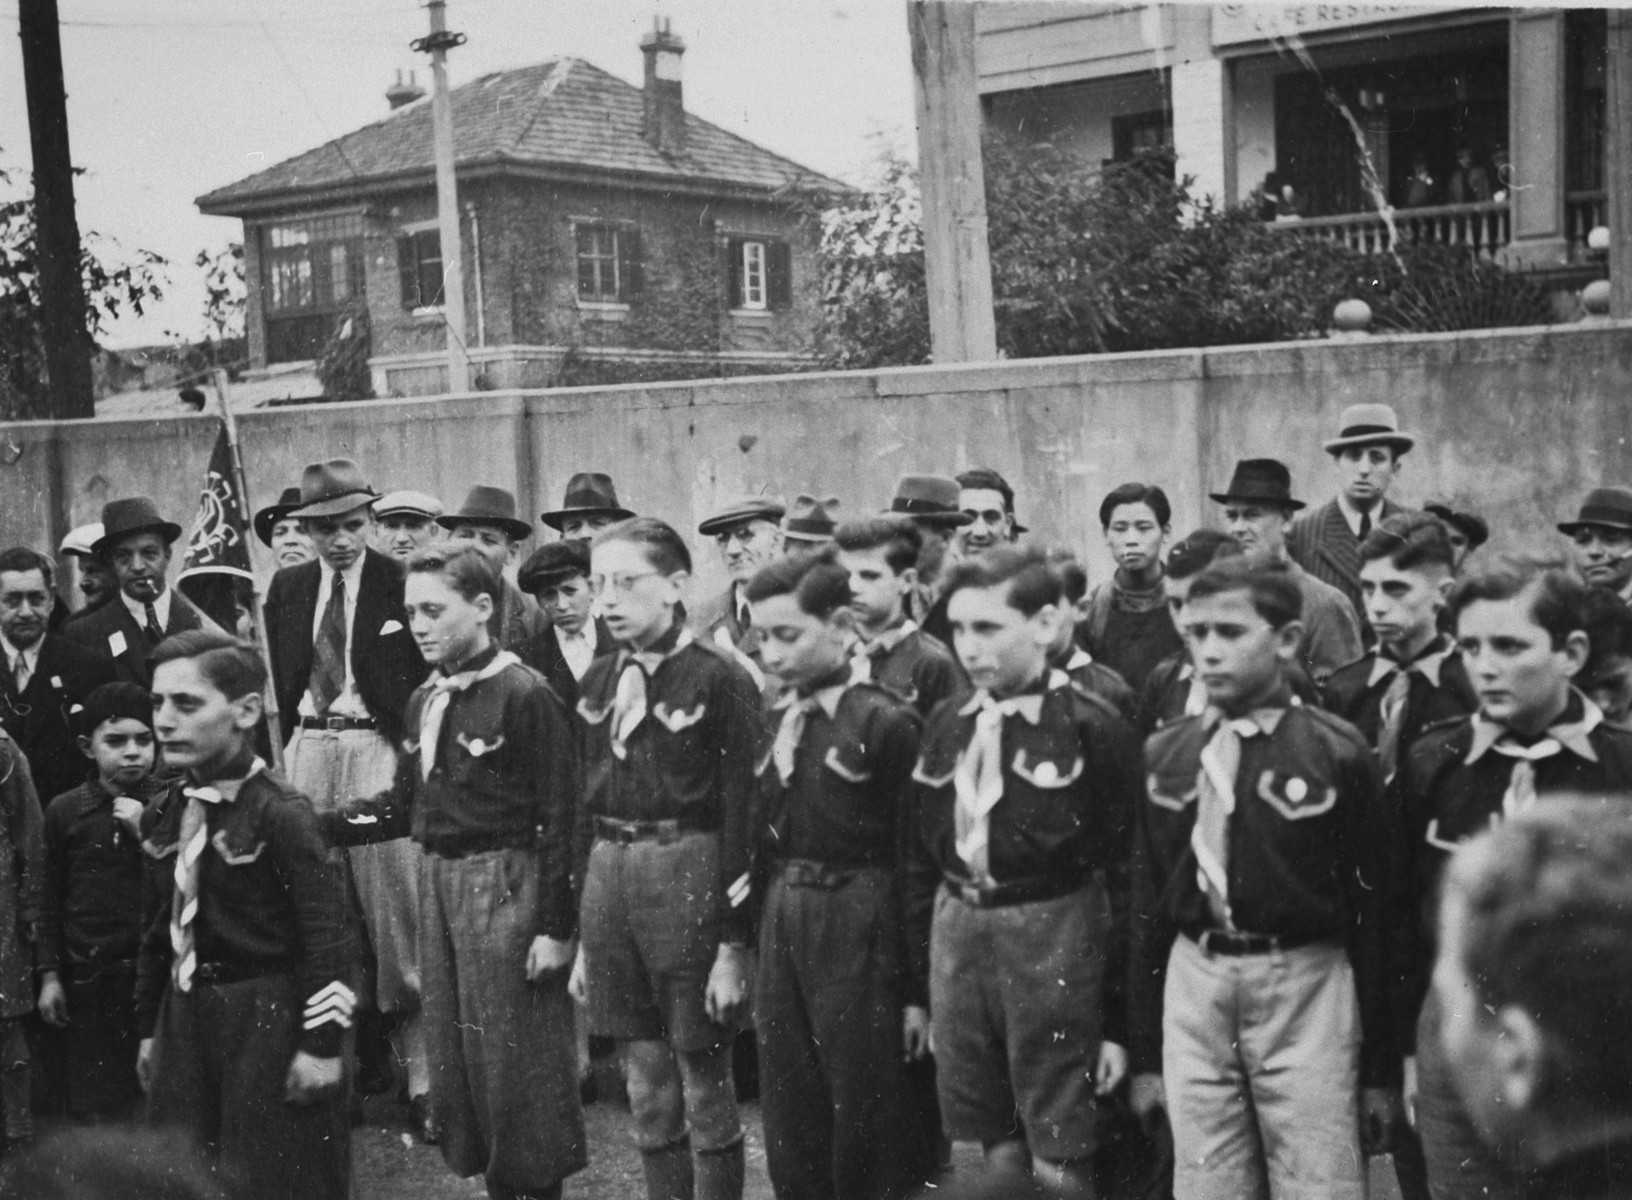 A troop of boy scouts stands at attention during a gathering in Shanghai.